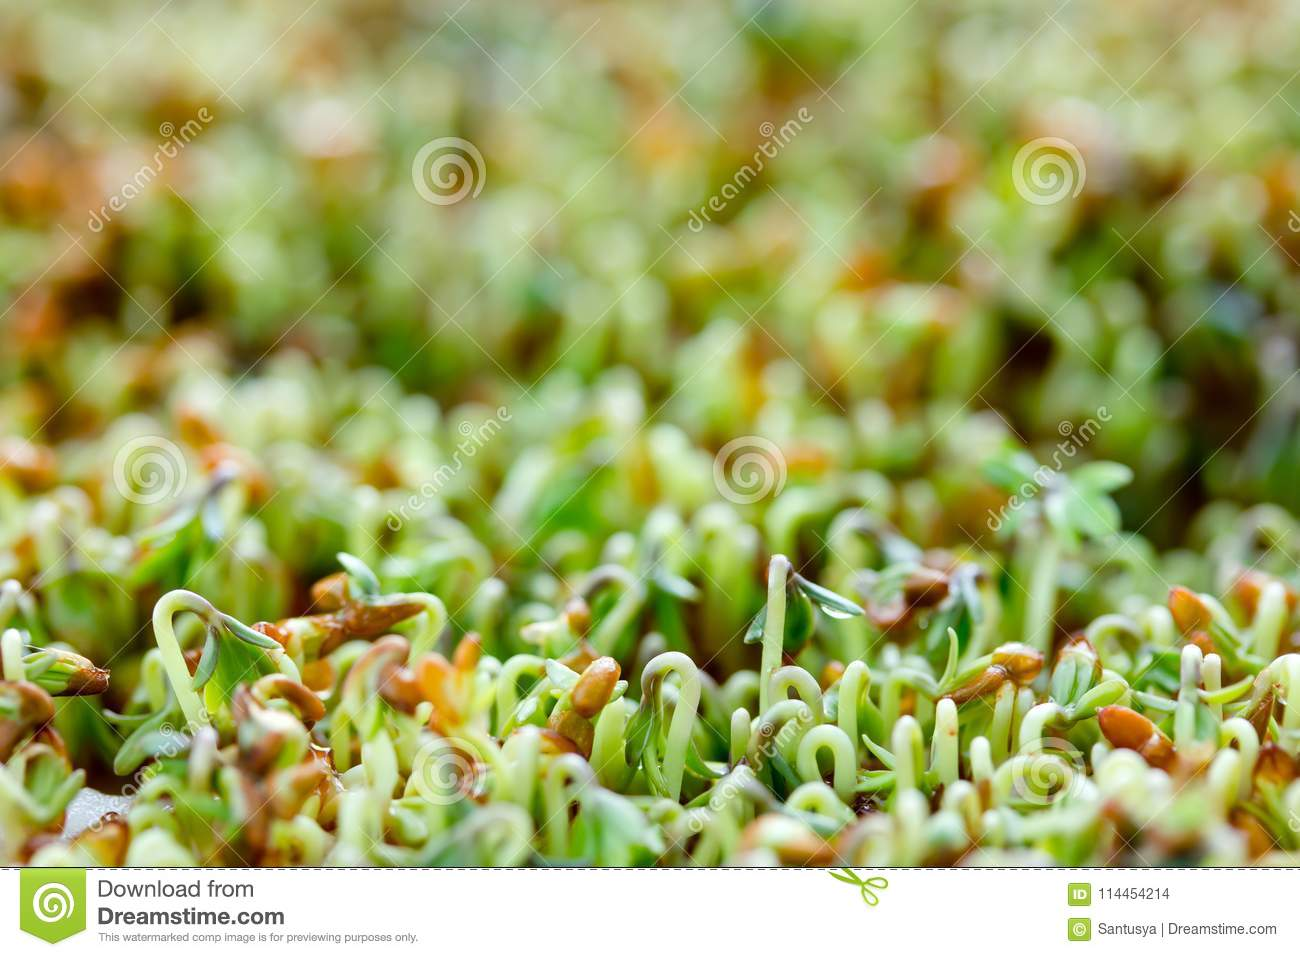 Watercress Or Cress Salad Young Sprouts Growing Stock Photo